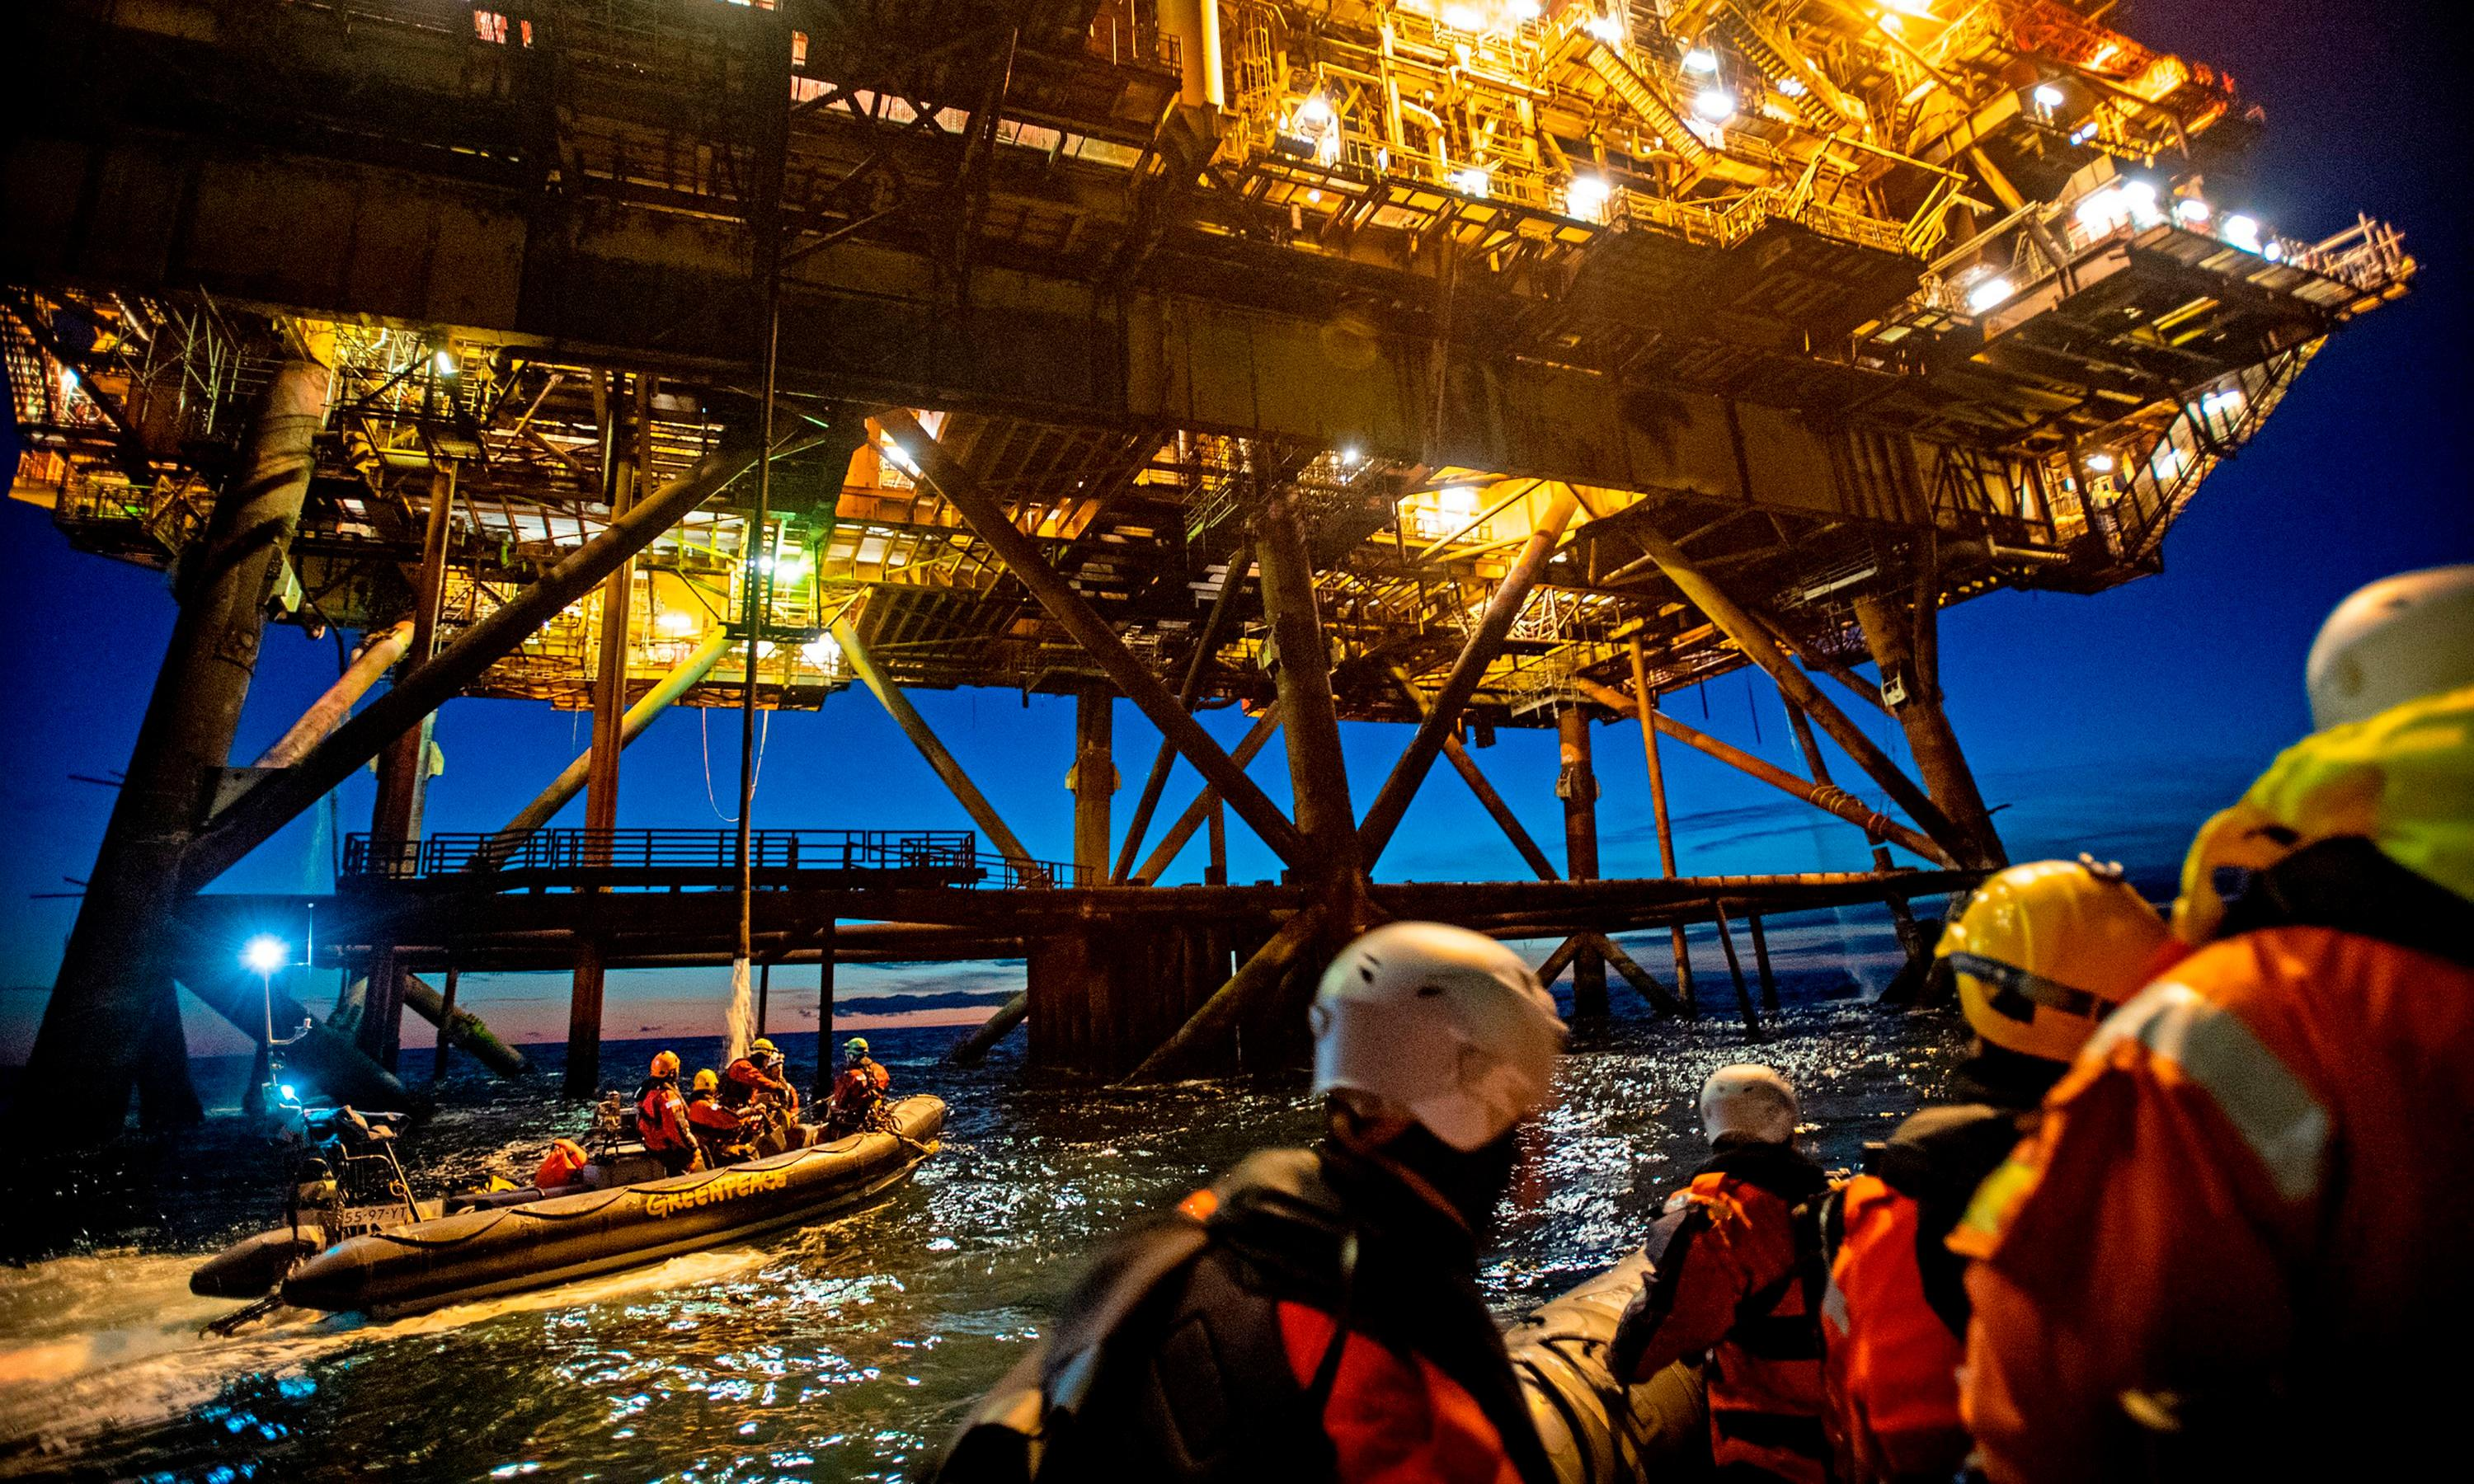 Greenpeace banned from protesting on Shell North Sea oil rigs